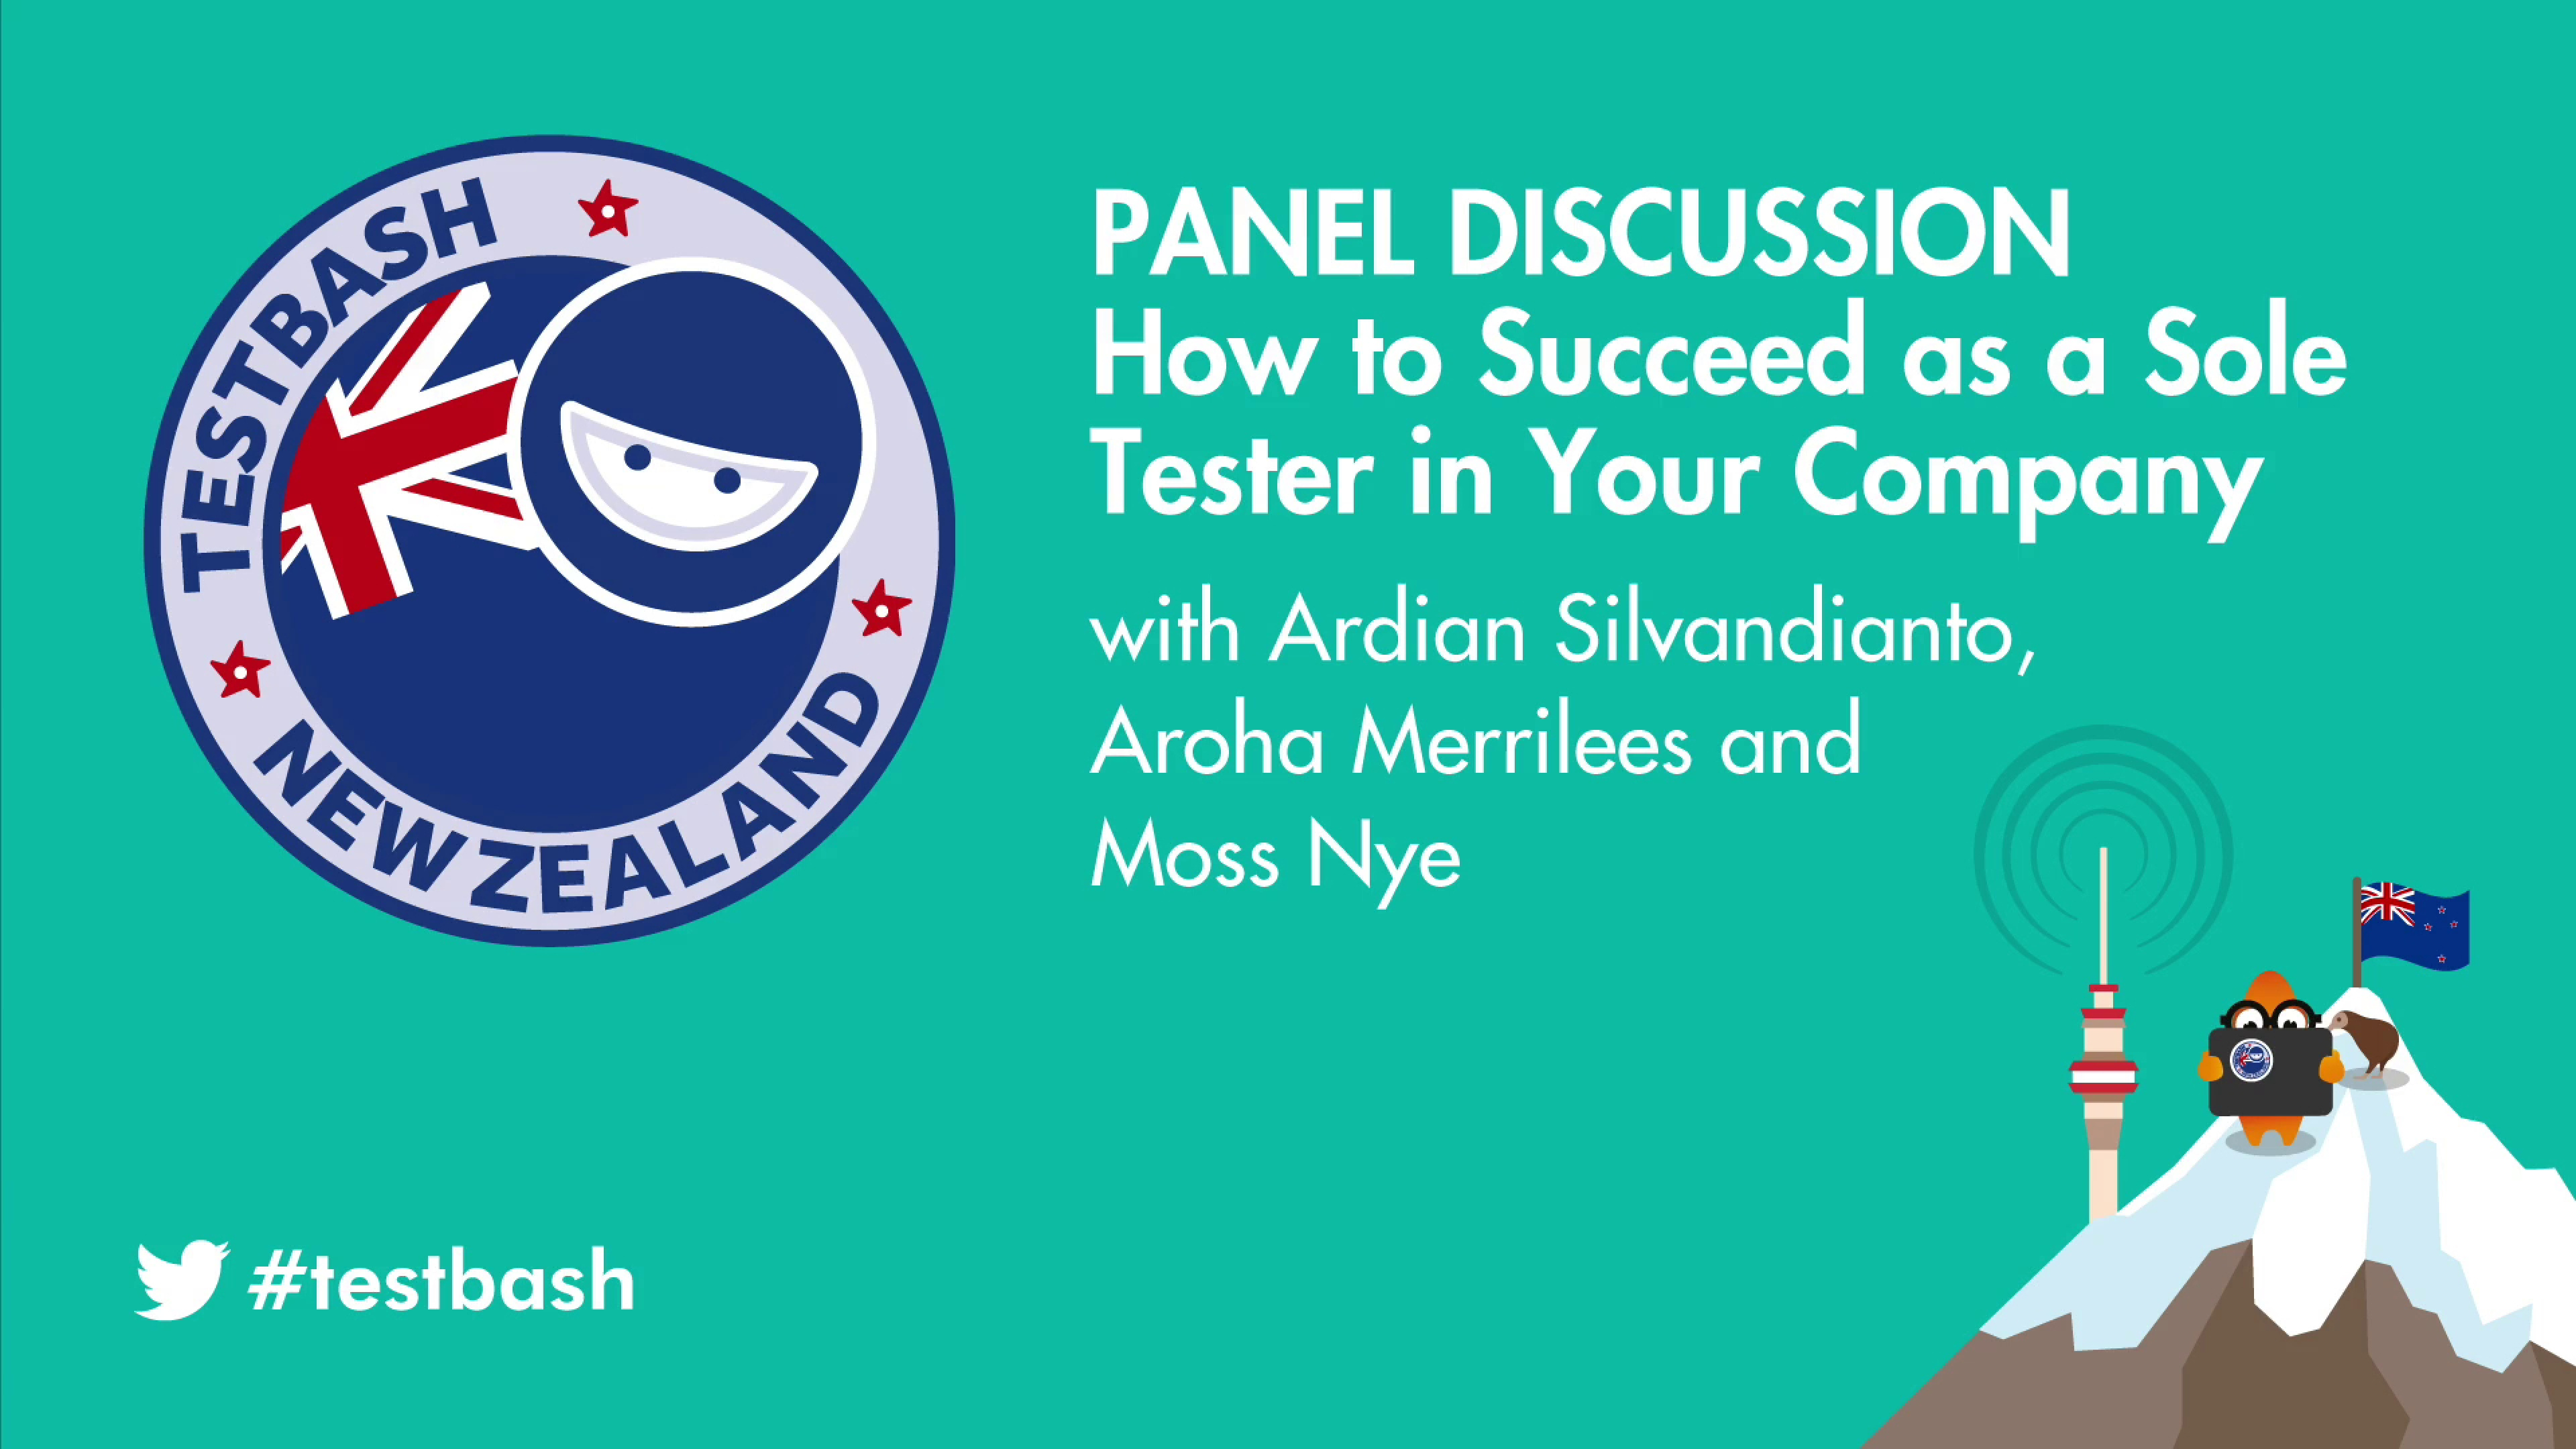 Panel Discussion: How to Succeed as a Sole Tester in Your Company - Moss Nye, Ardian Silvandianto and Aroha Merrilees